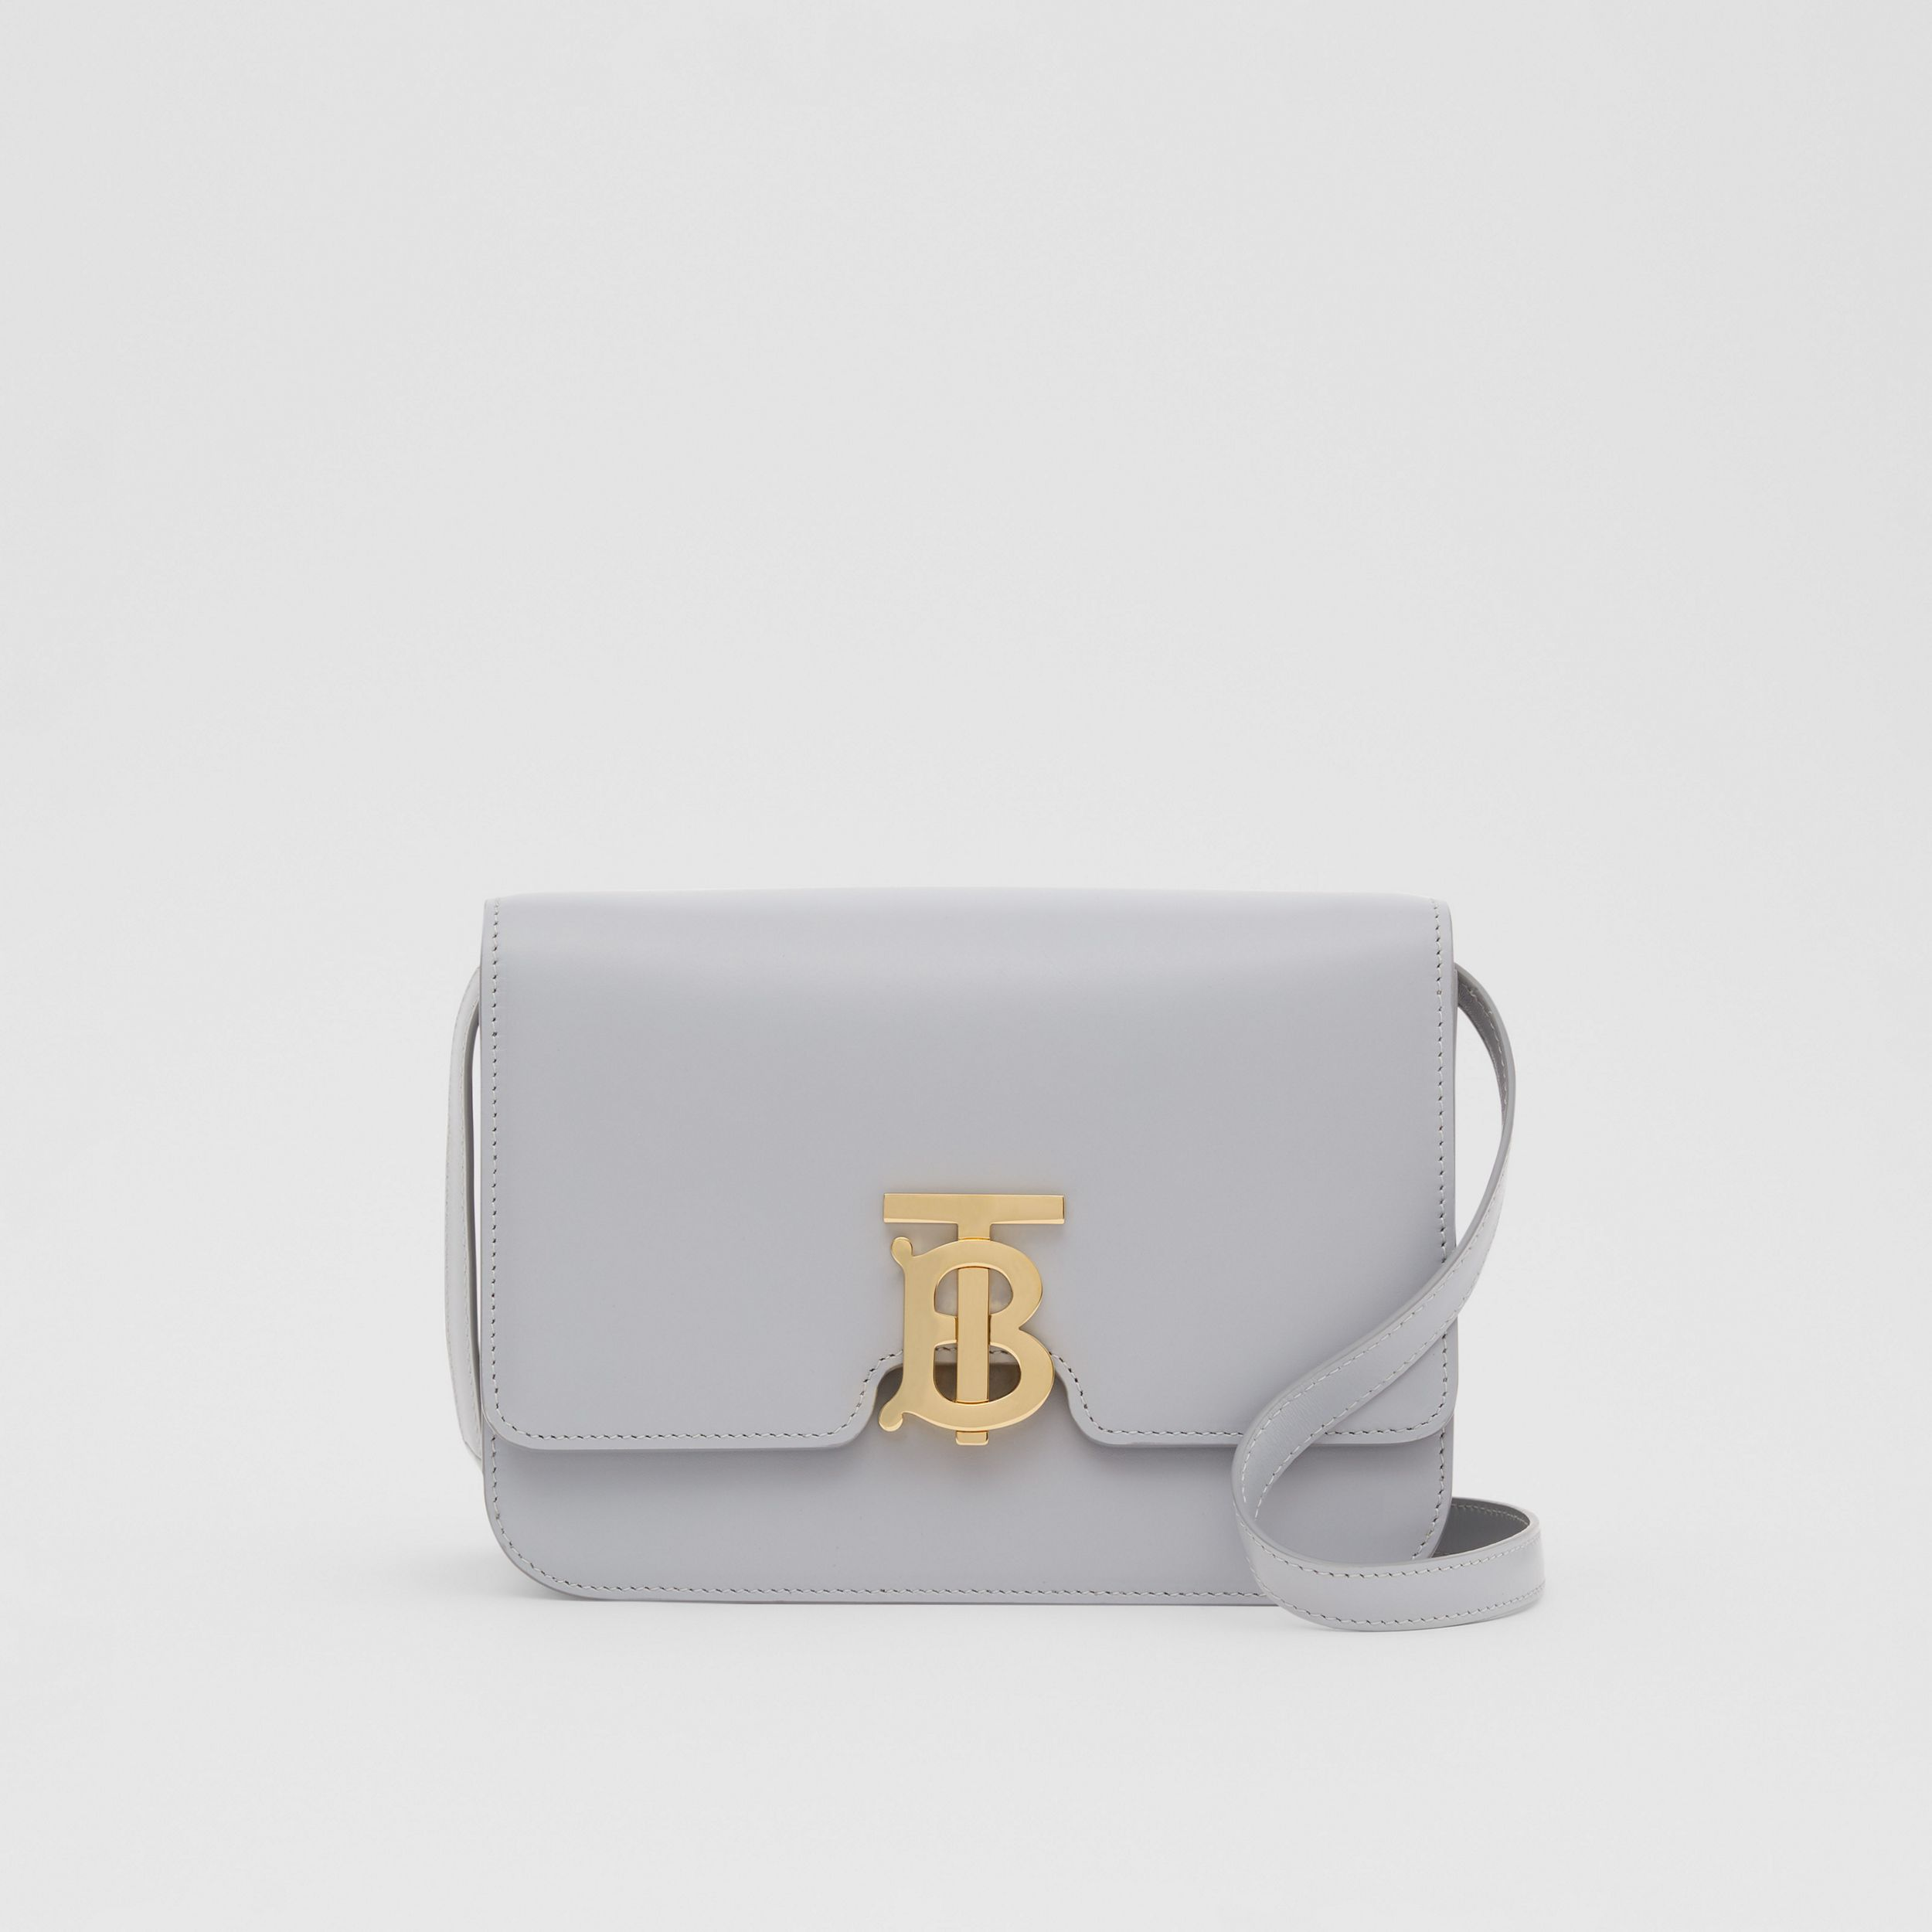 Small Leather TB Bag in Heather Melange - Women | Burberry - 1